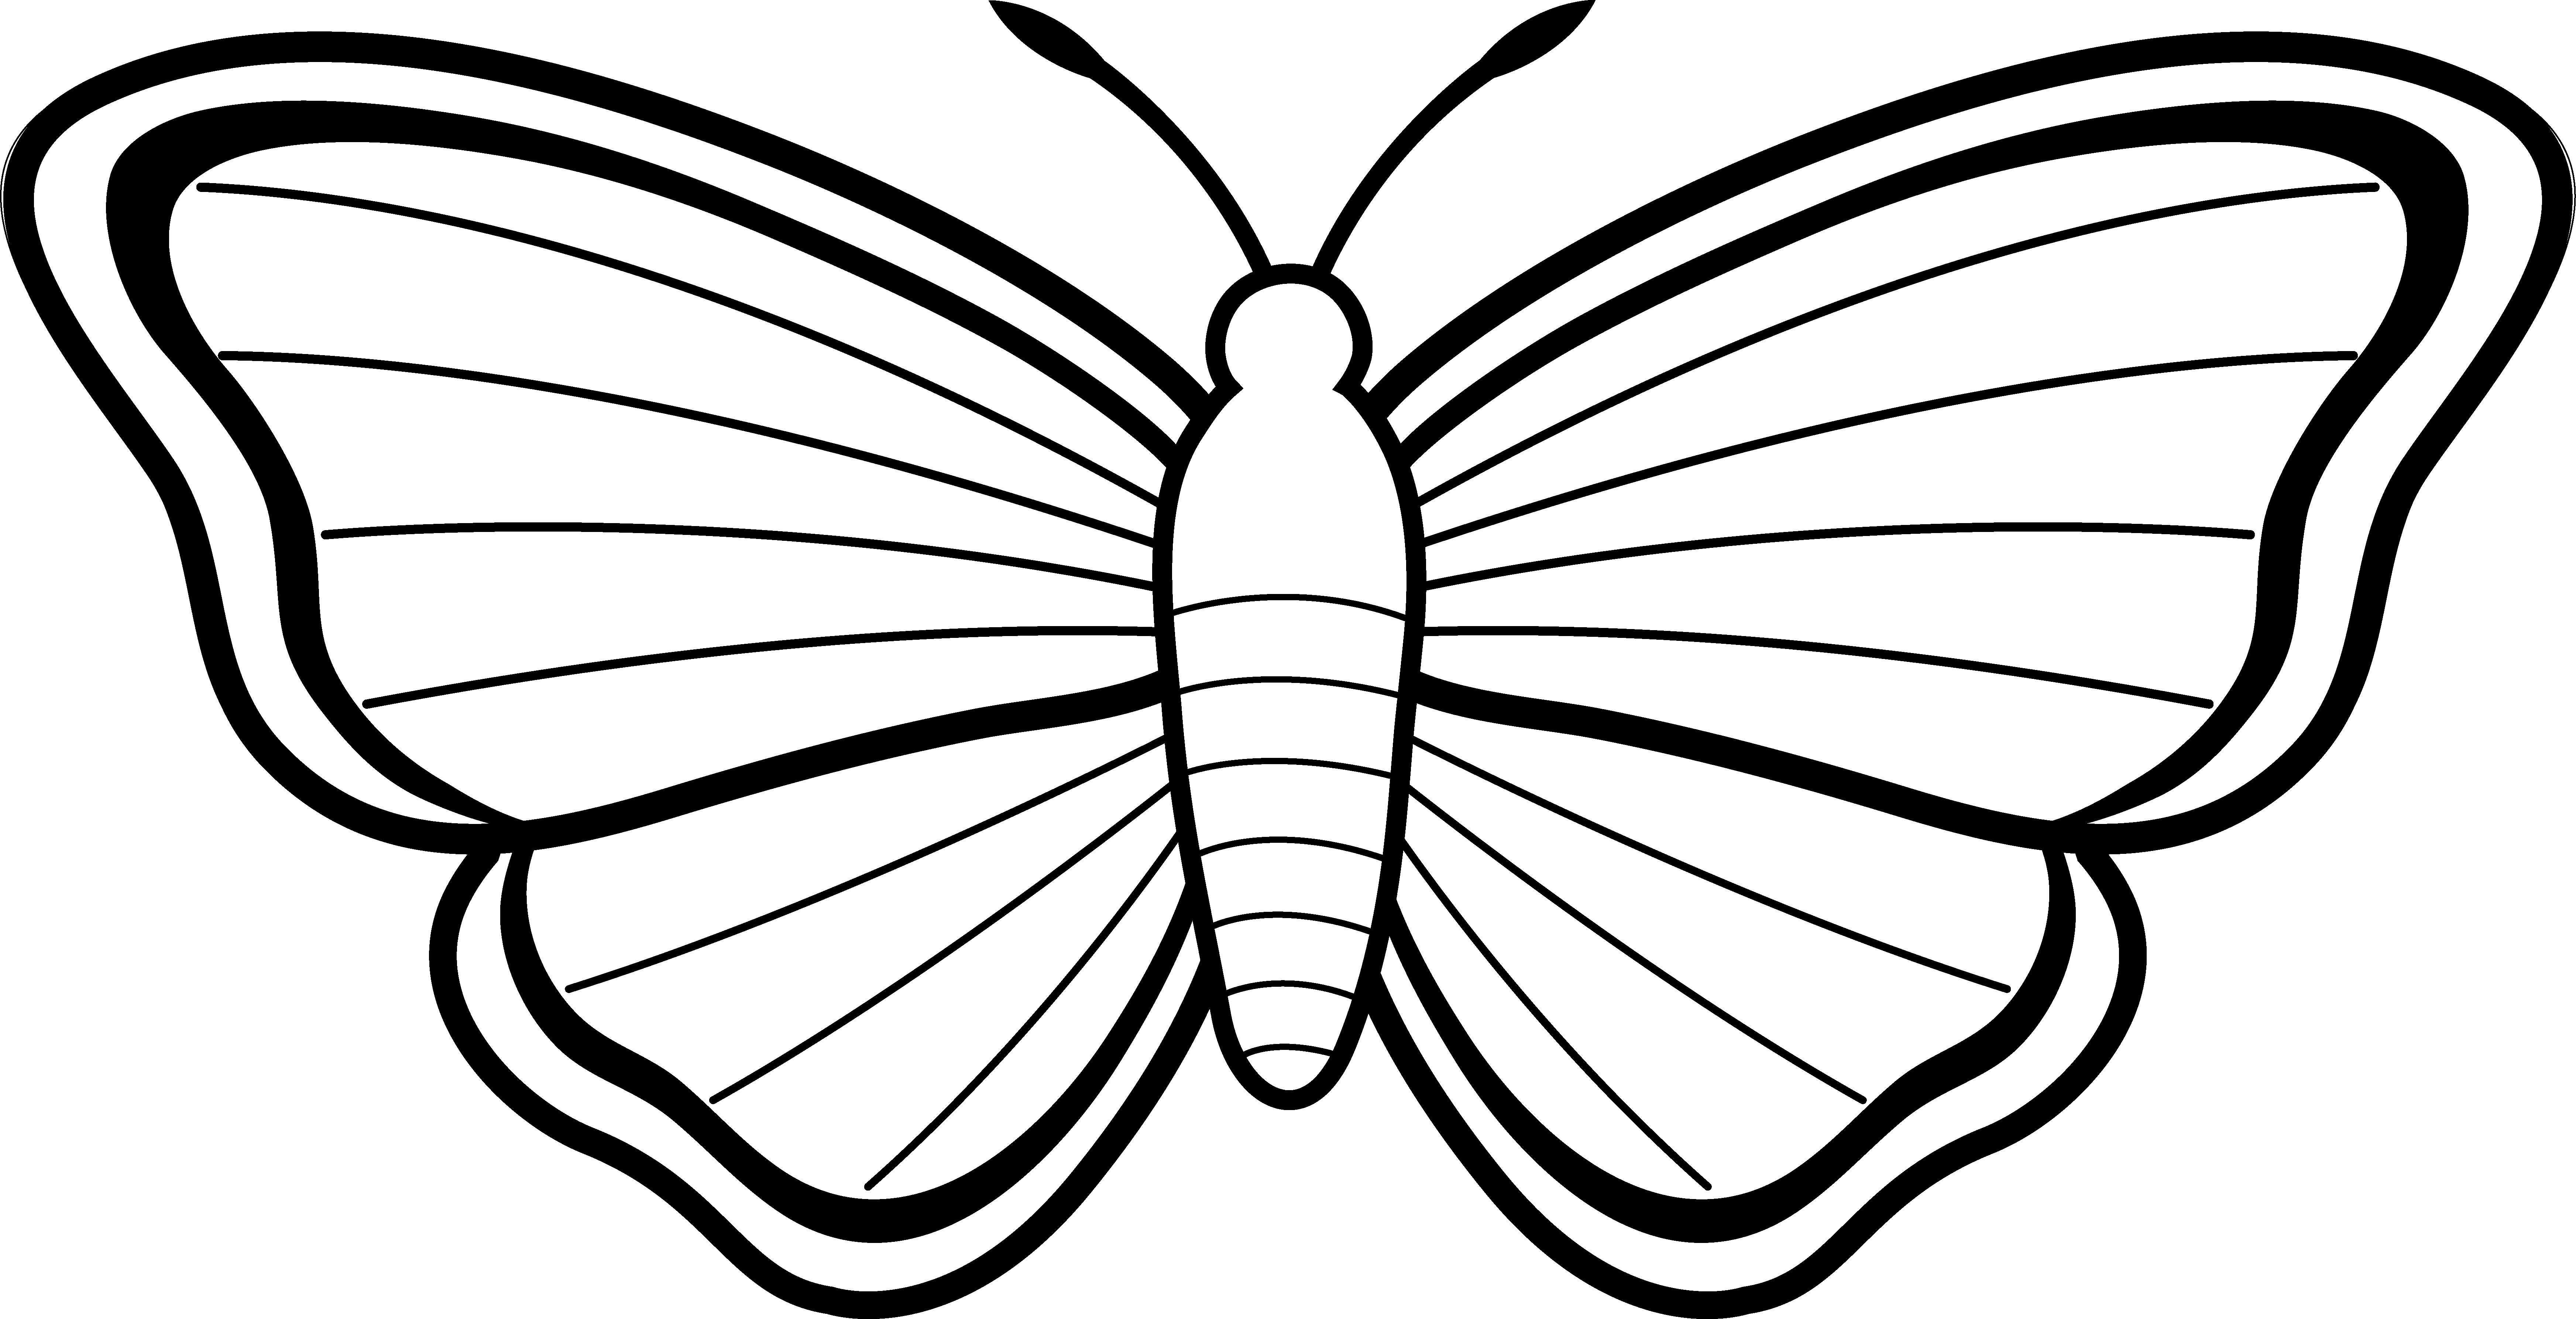 butterfly black and white clipart cartoon